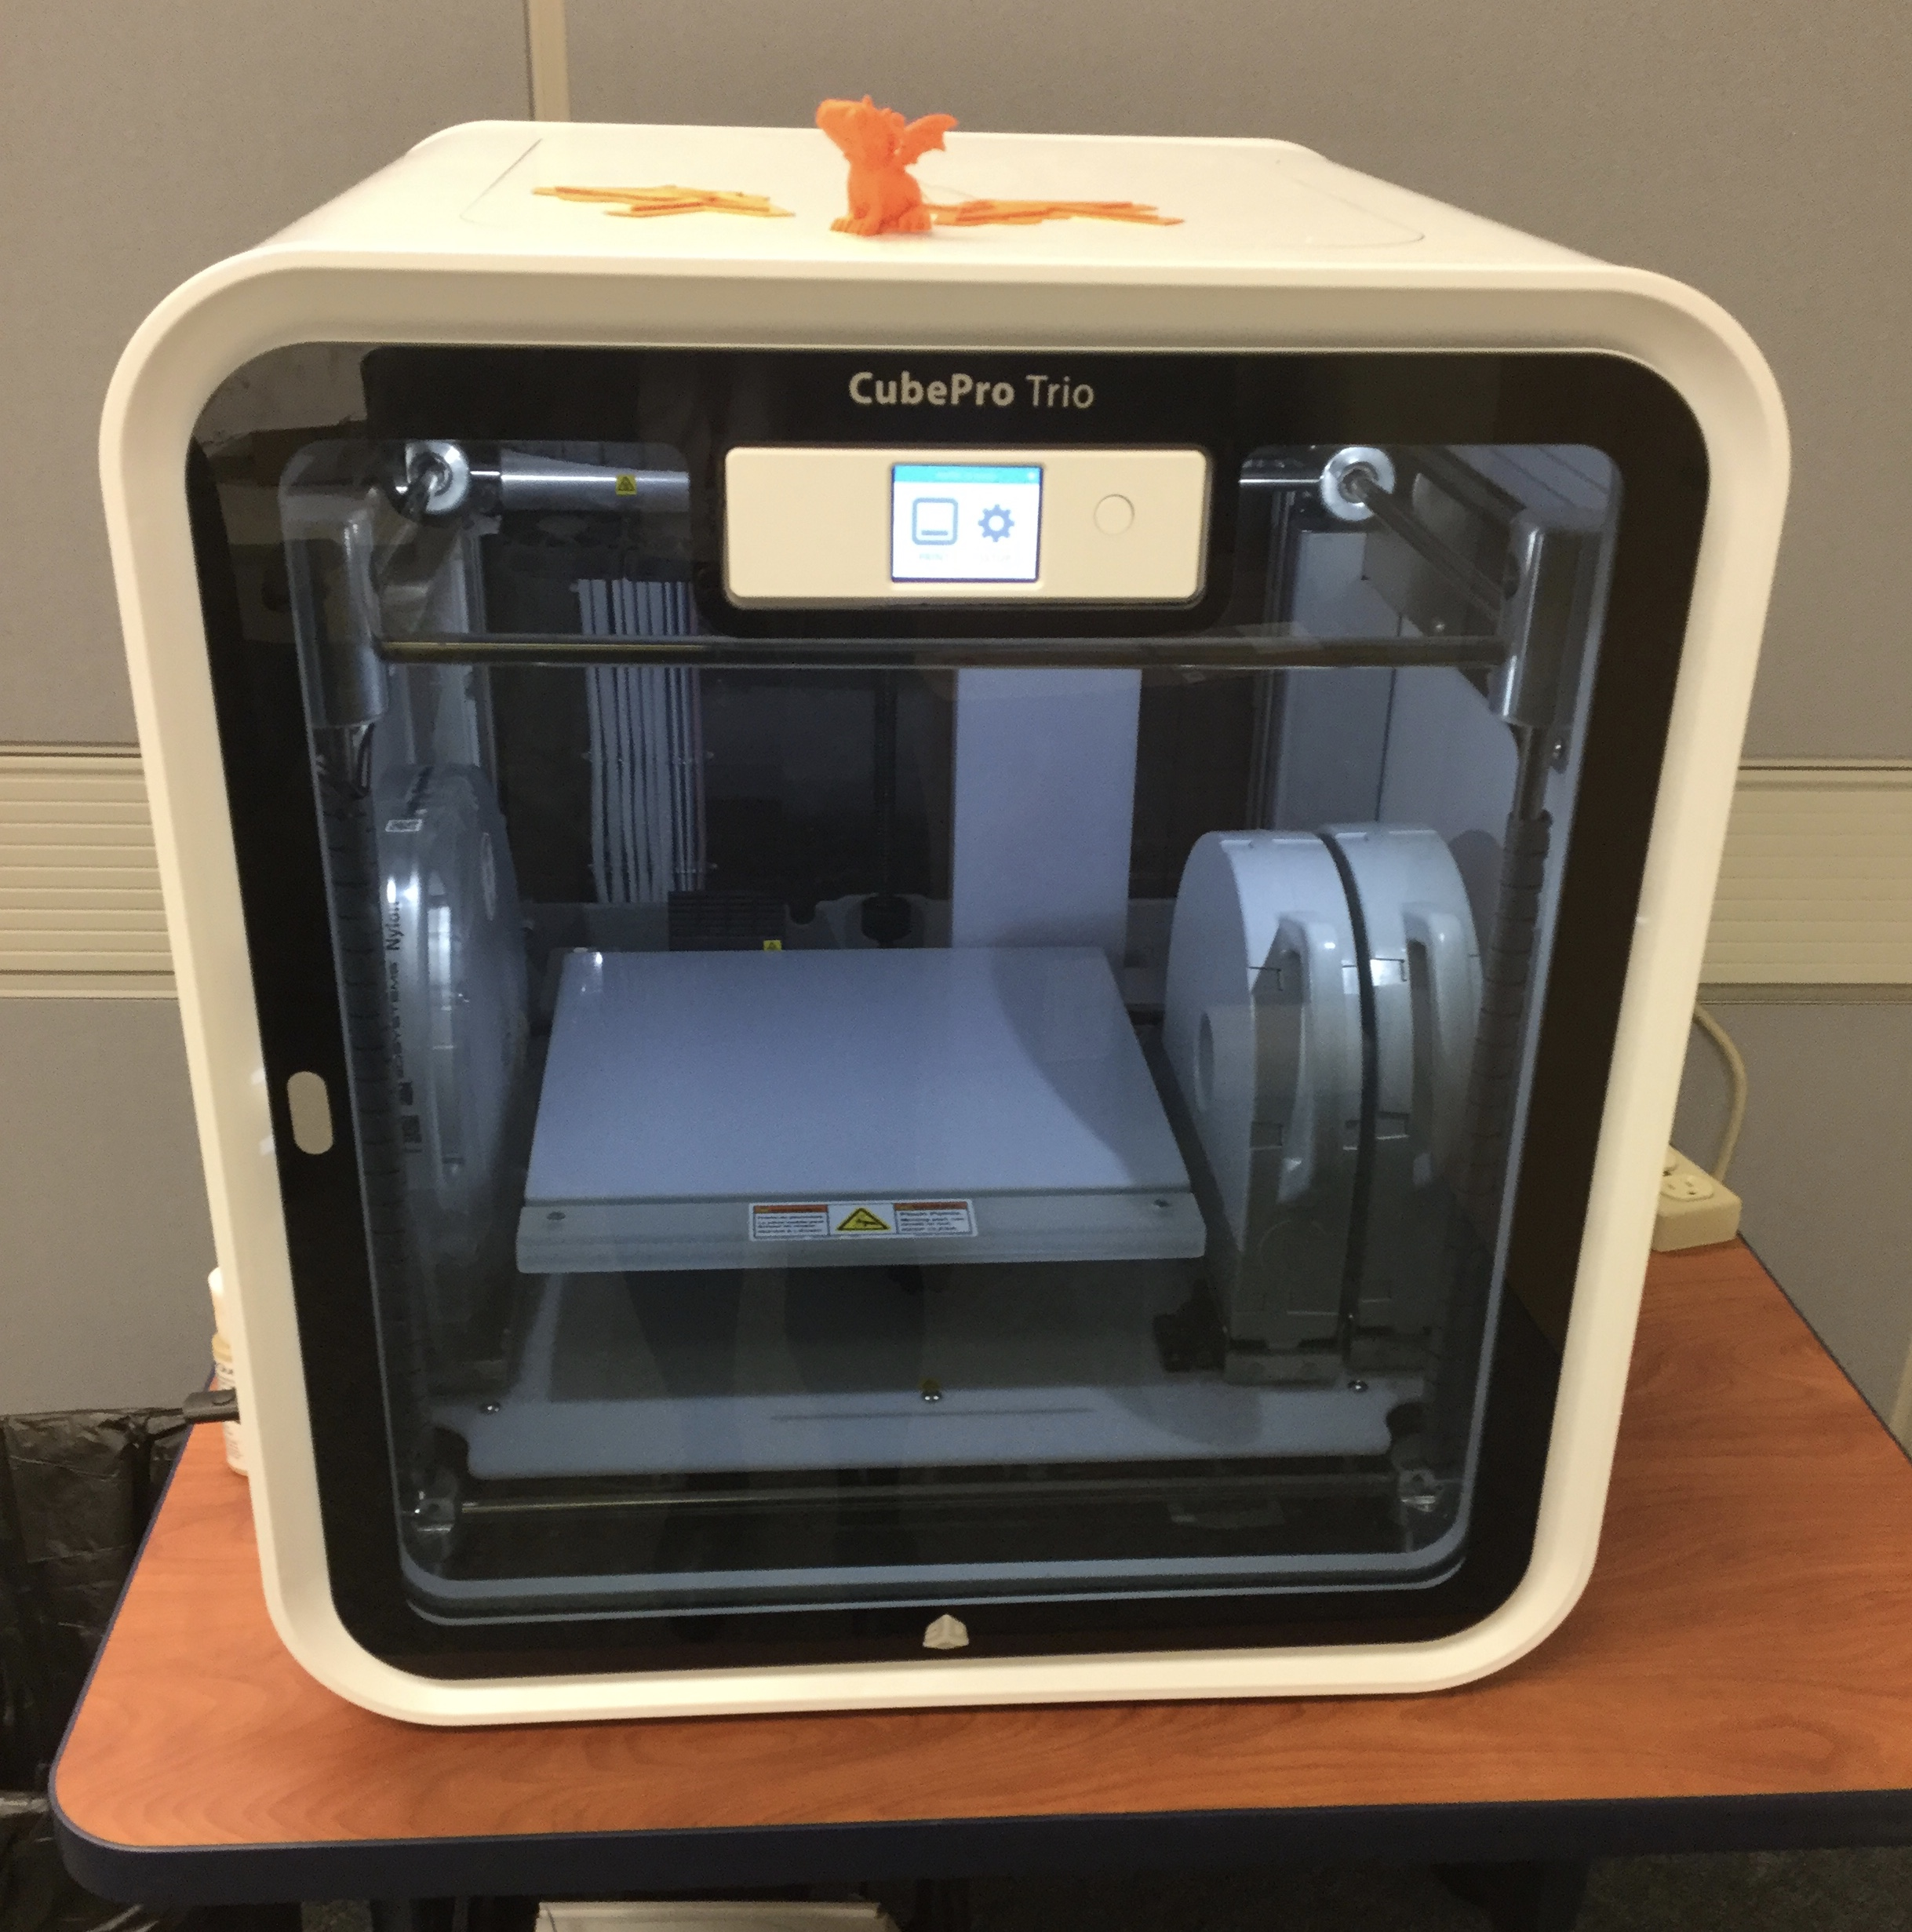 A picture of a CubePro trio 3D printer--a 2.5 foot square white plastic box with rounded edges and a grey transparent front door, through which the inner mechanism can be seen. On top is a small orange 3D printed dragon, named Percy.